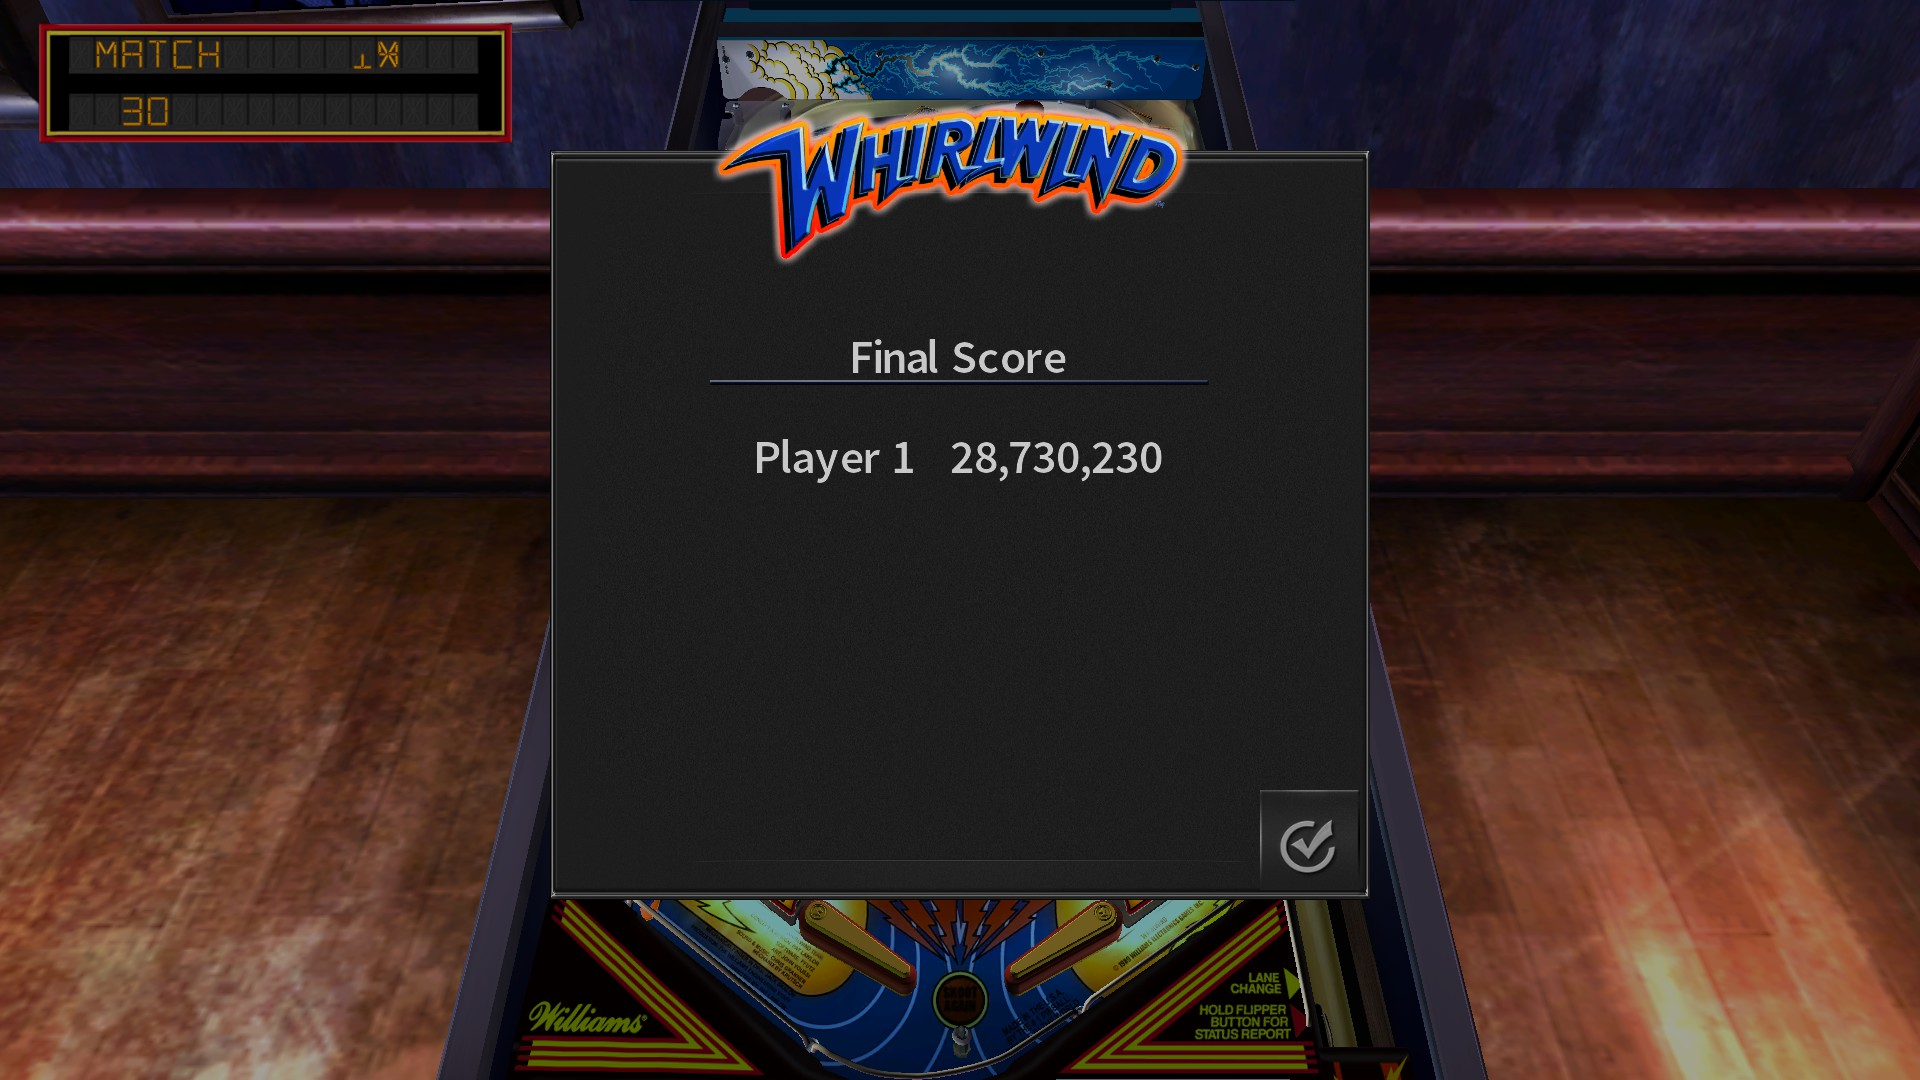 Mantalow: Pinball Arcade: Whirlwind (PC) 28,730,230 points on 2018-02-14 11:47:35